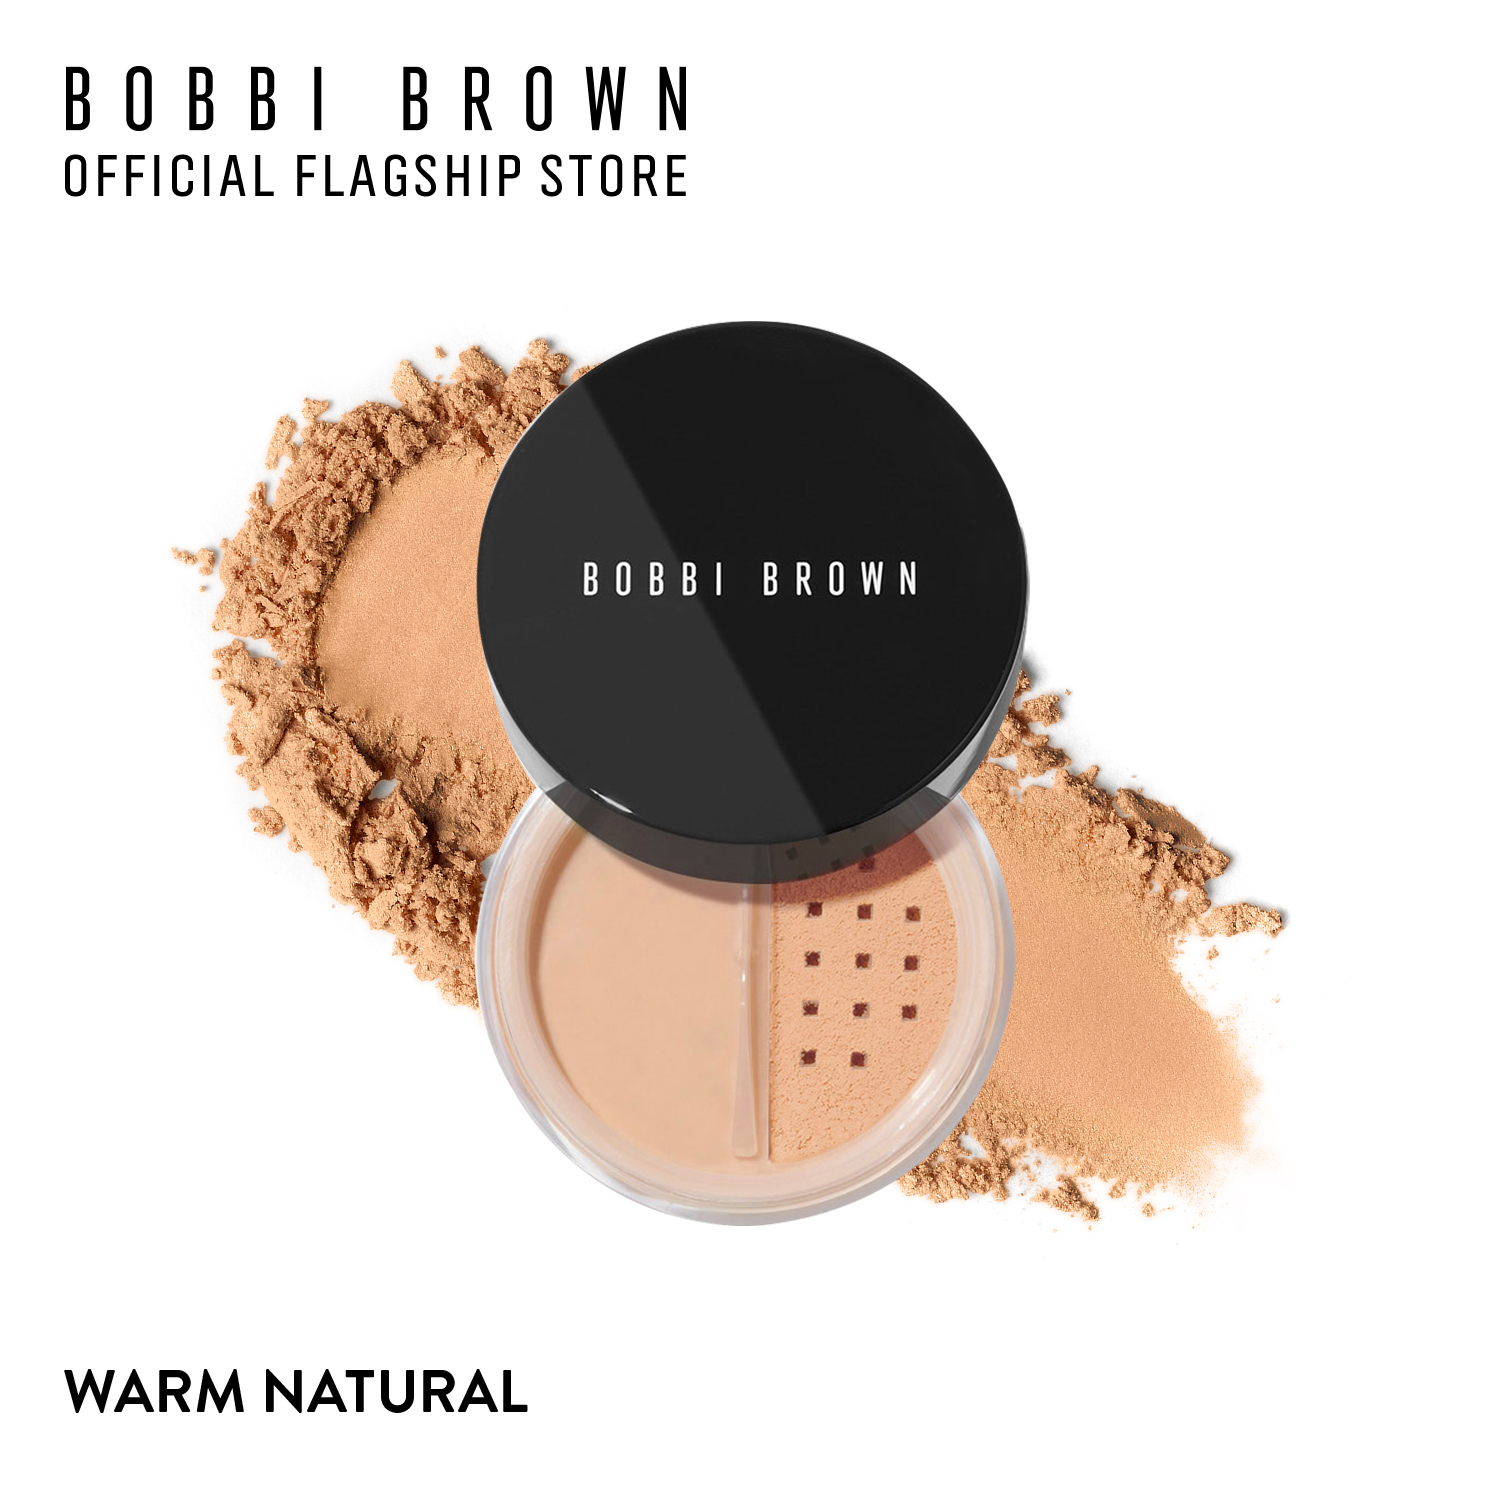 Phấn phủ dạng bột Bobbi Brown Sheer Finish Loose Powder 10g